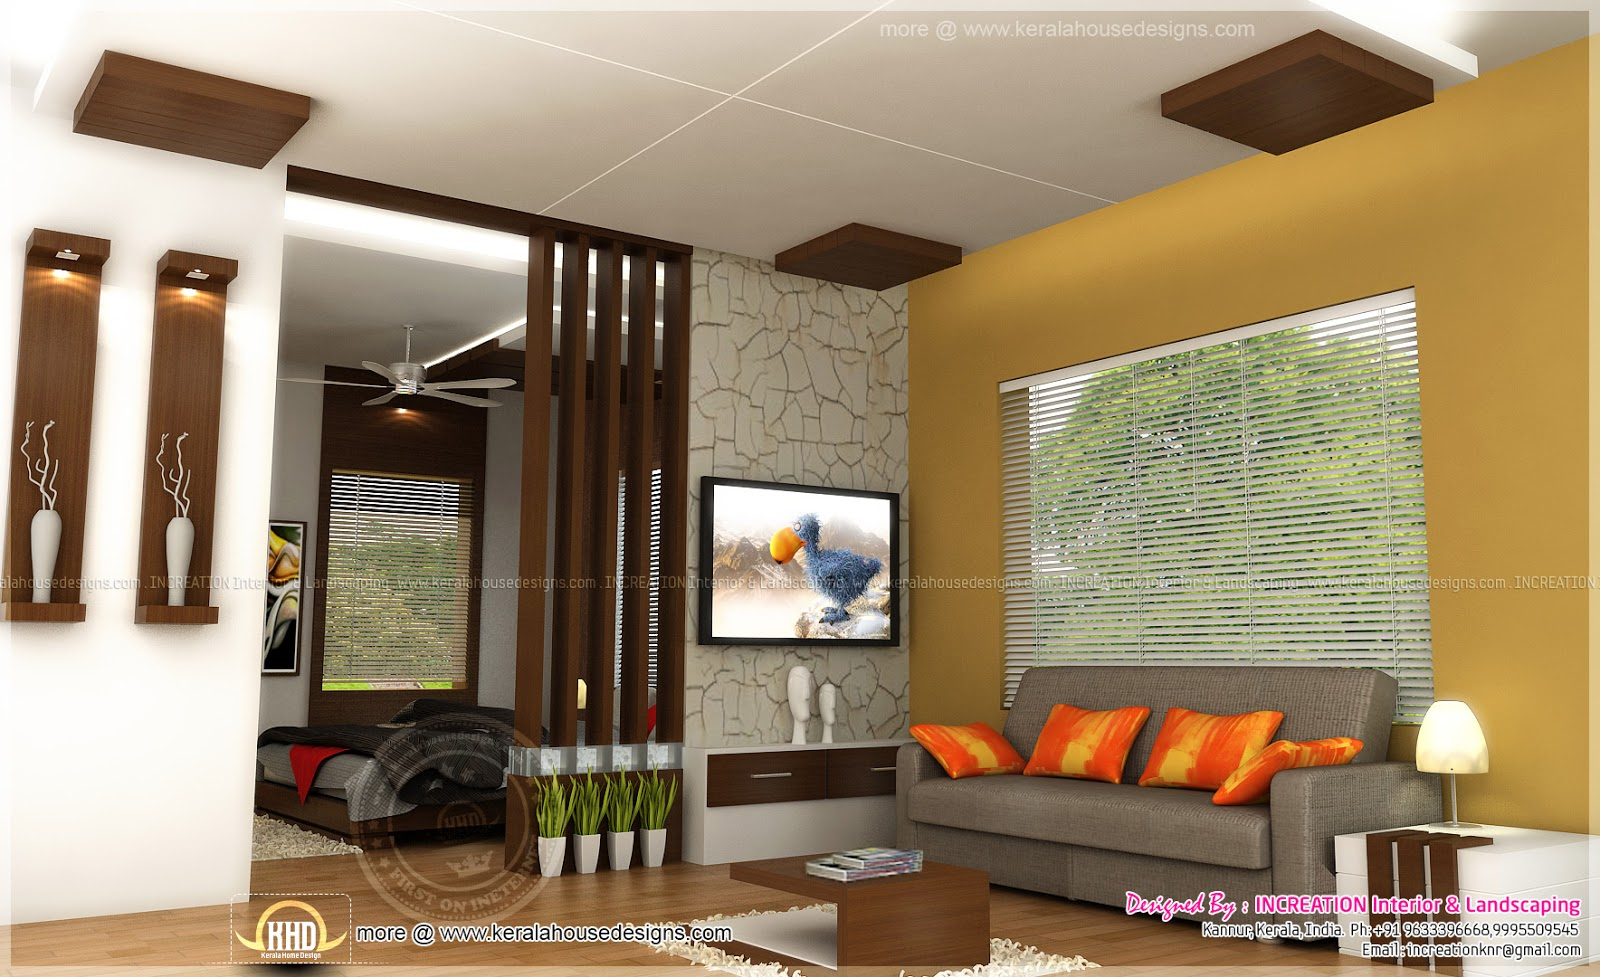 Interior designs from kannur kerala kerala home design for Living room interior design photo gallery